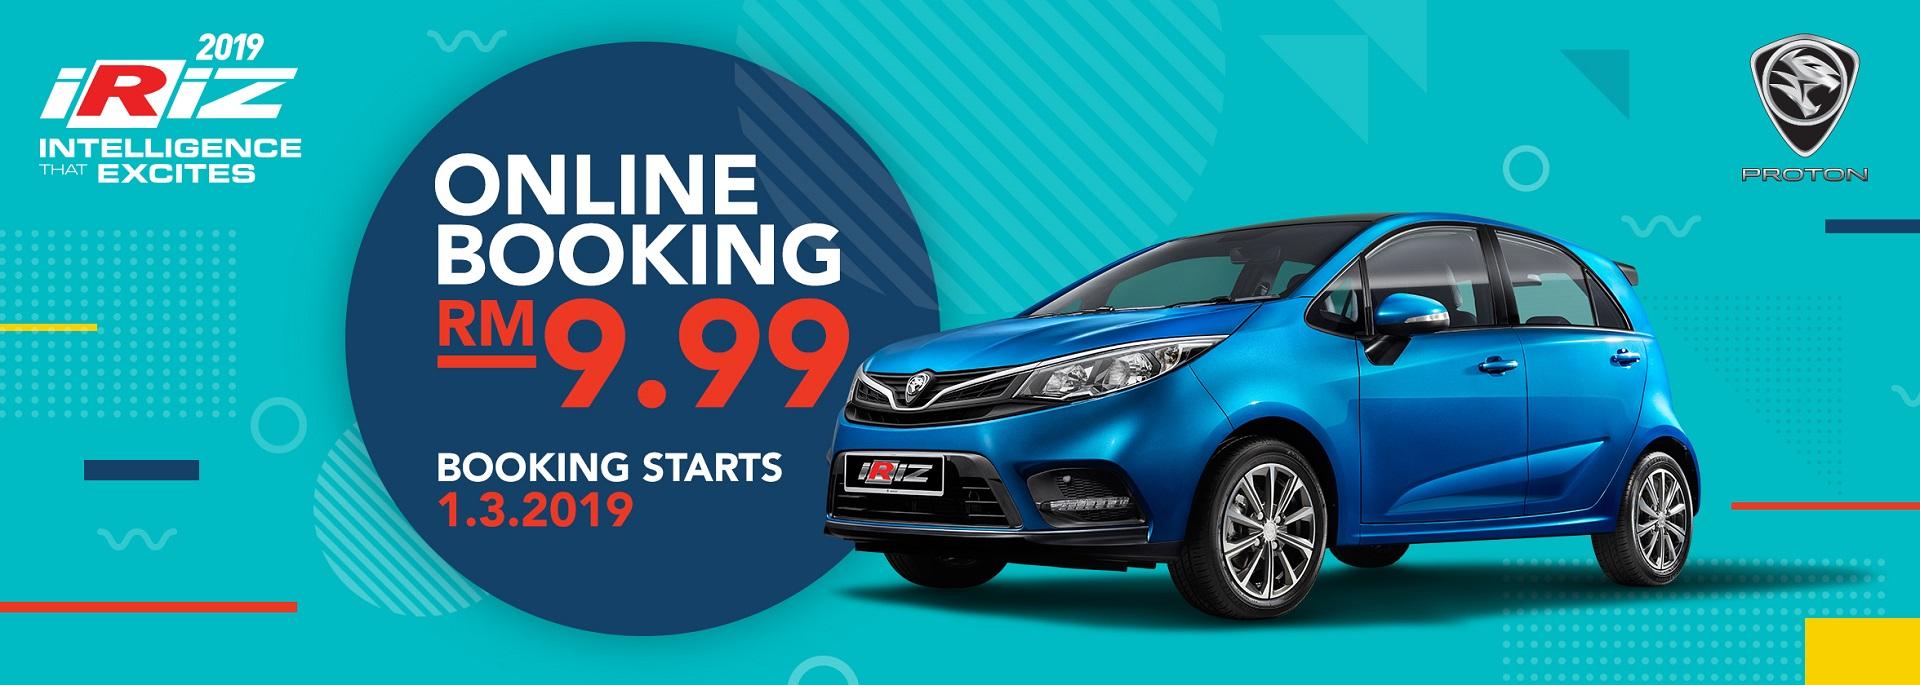 book the facelifted proton iriz from just rm9 99 online